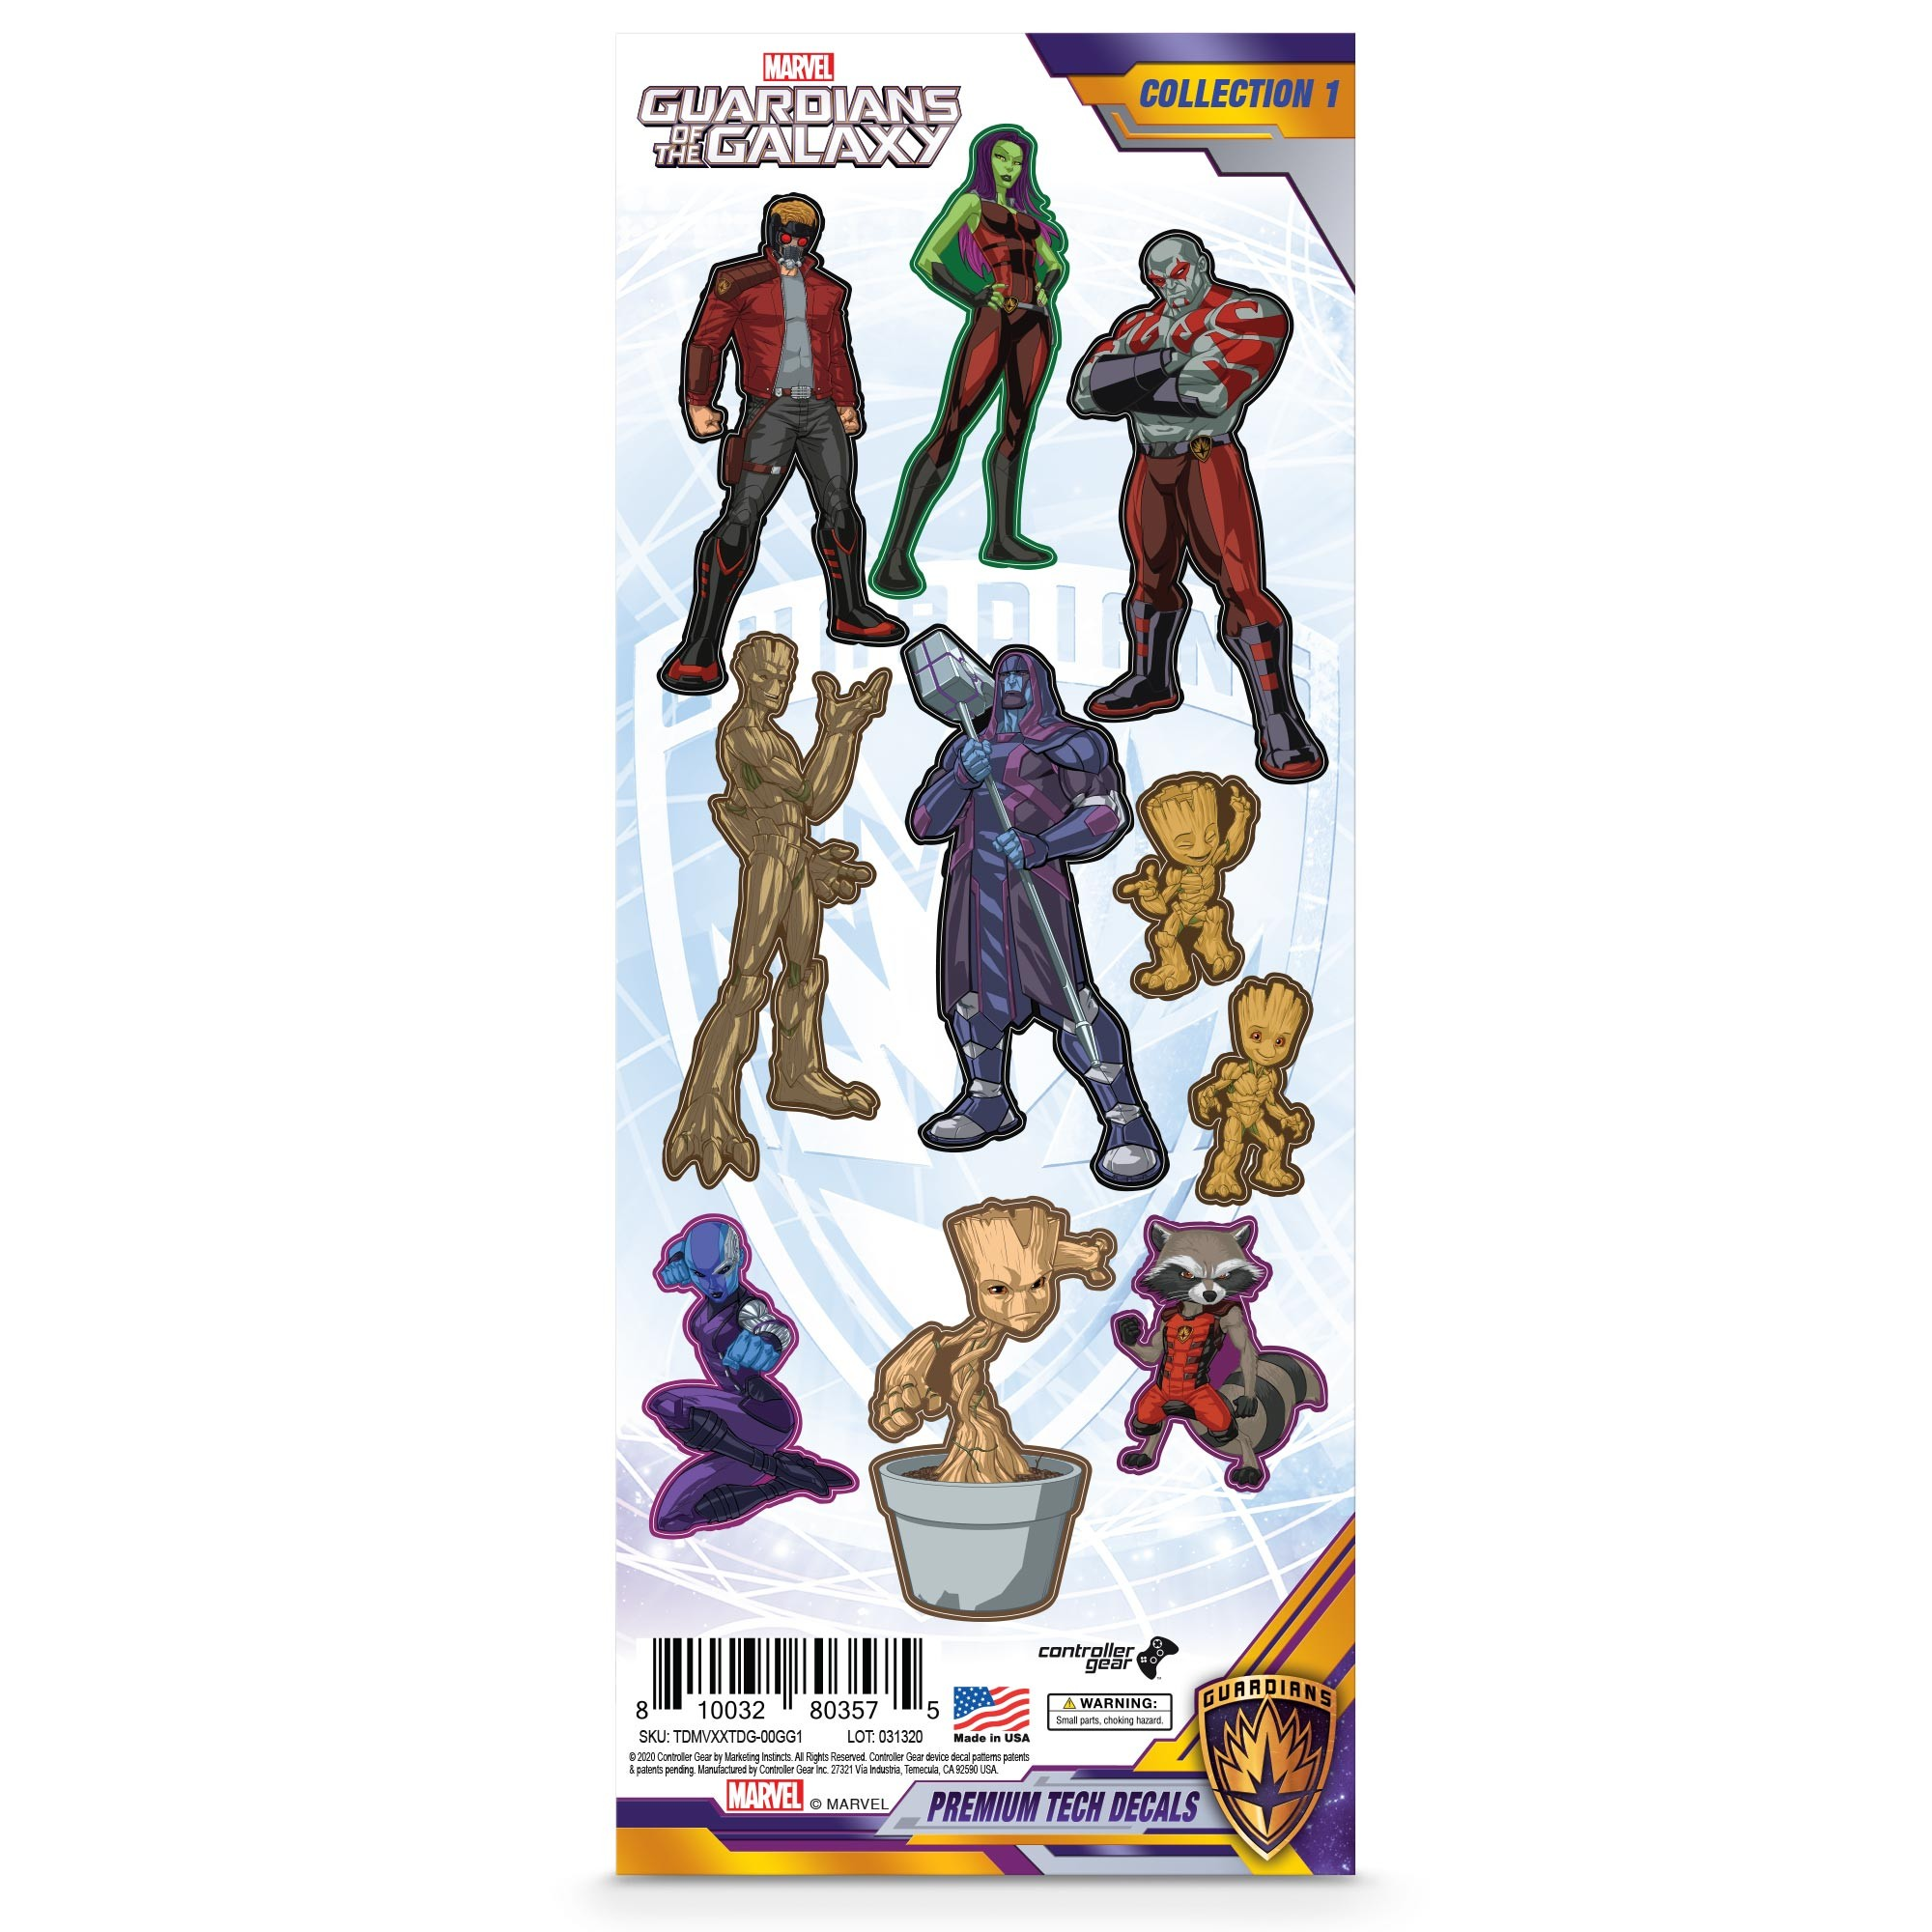 Guardians of the Galaxy- IMAGE 1